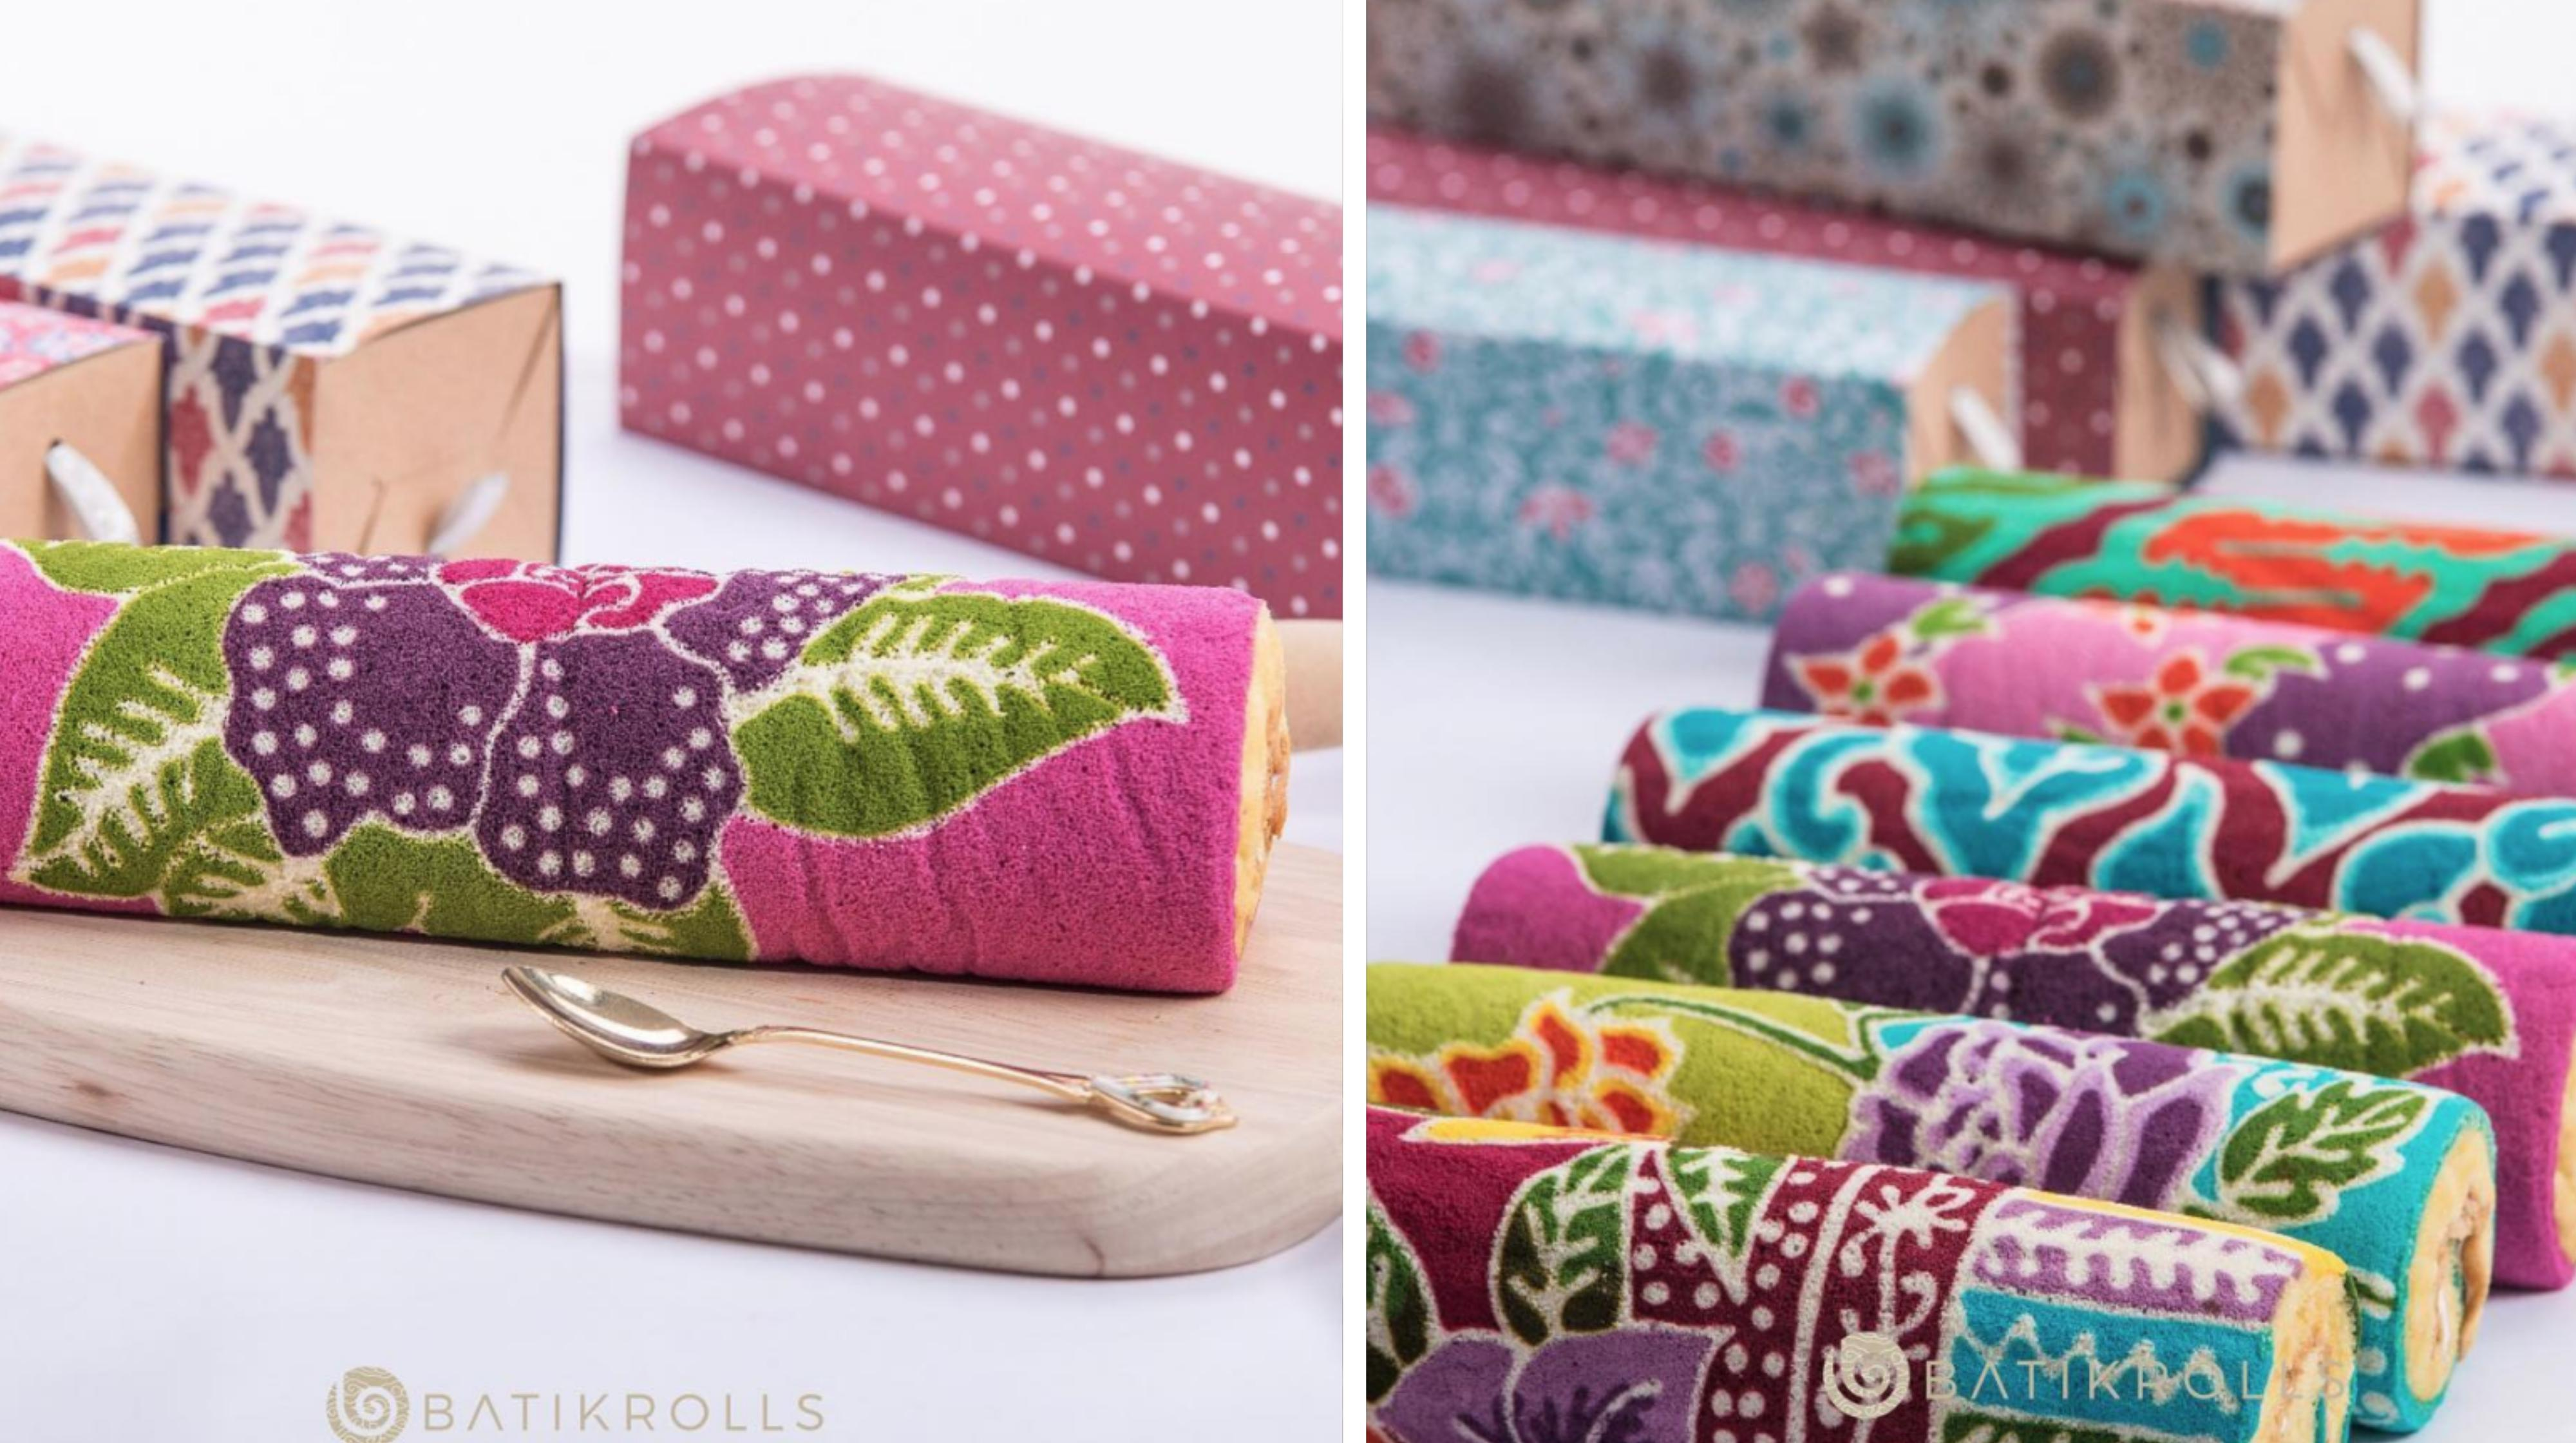 Batik Swiss Rolls From Home Baker In S Pore Look Like Real Fabric Mothership Sg News From Singapore Asia And Around The World